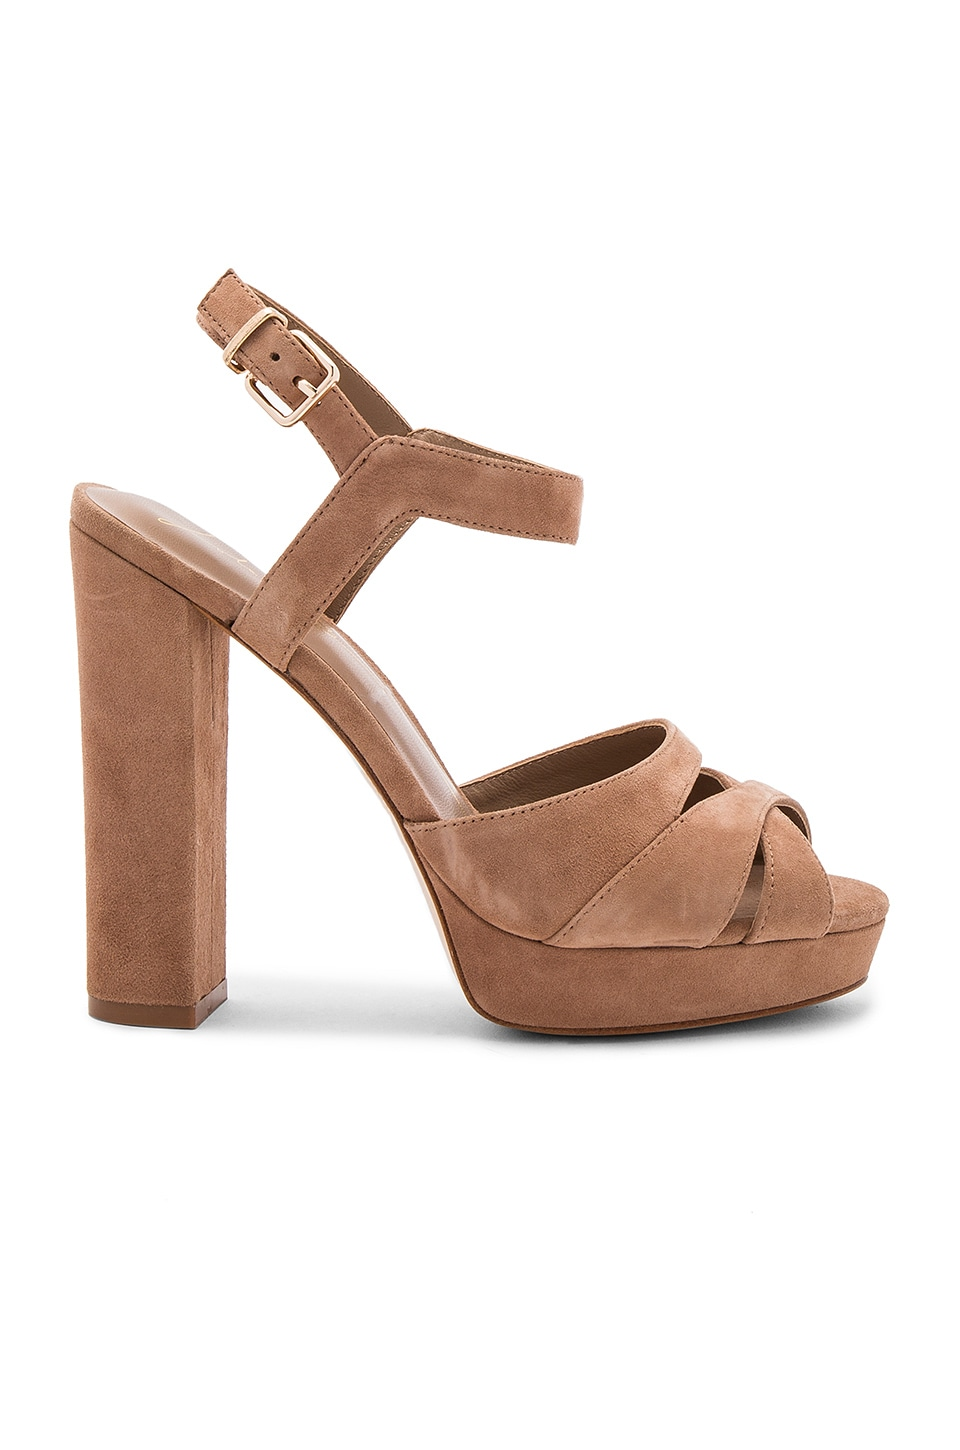 Lola Cruz Peeptoe Heel in Light Brown